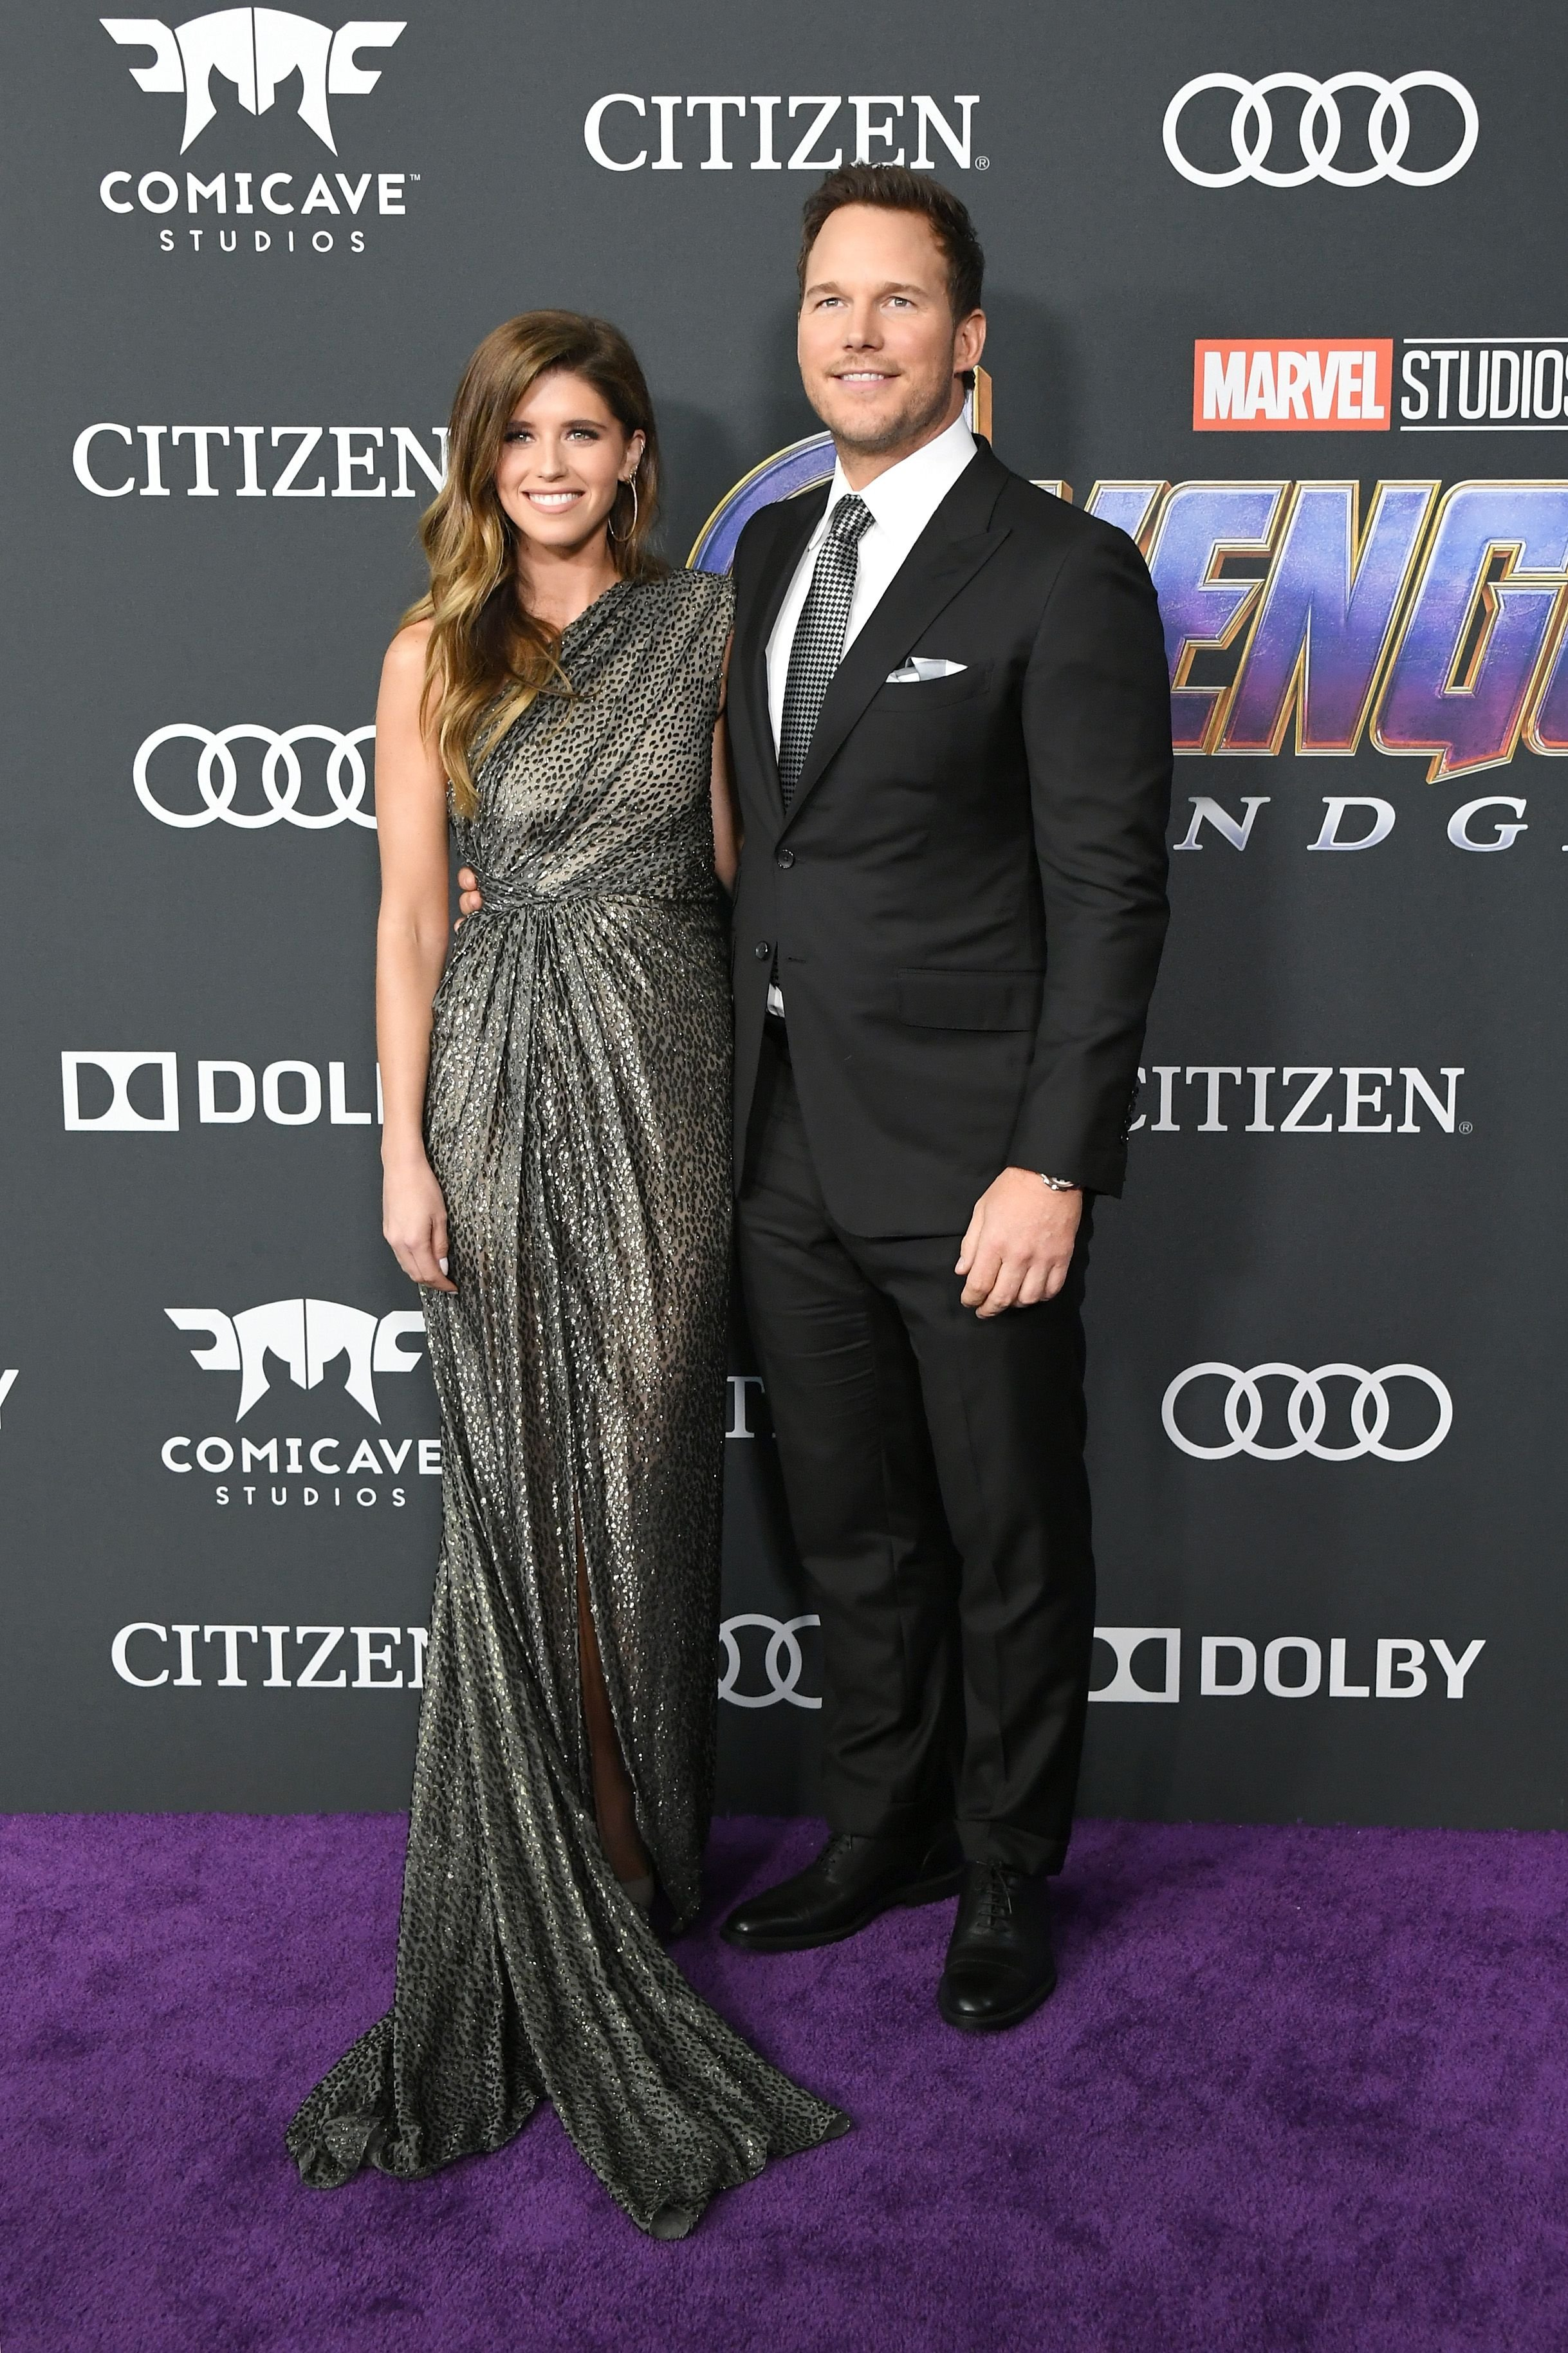 Chris Pratt and Katherine Schwarzenegger attending the Avengers: Endgame premiere/Photo:Getty Images